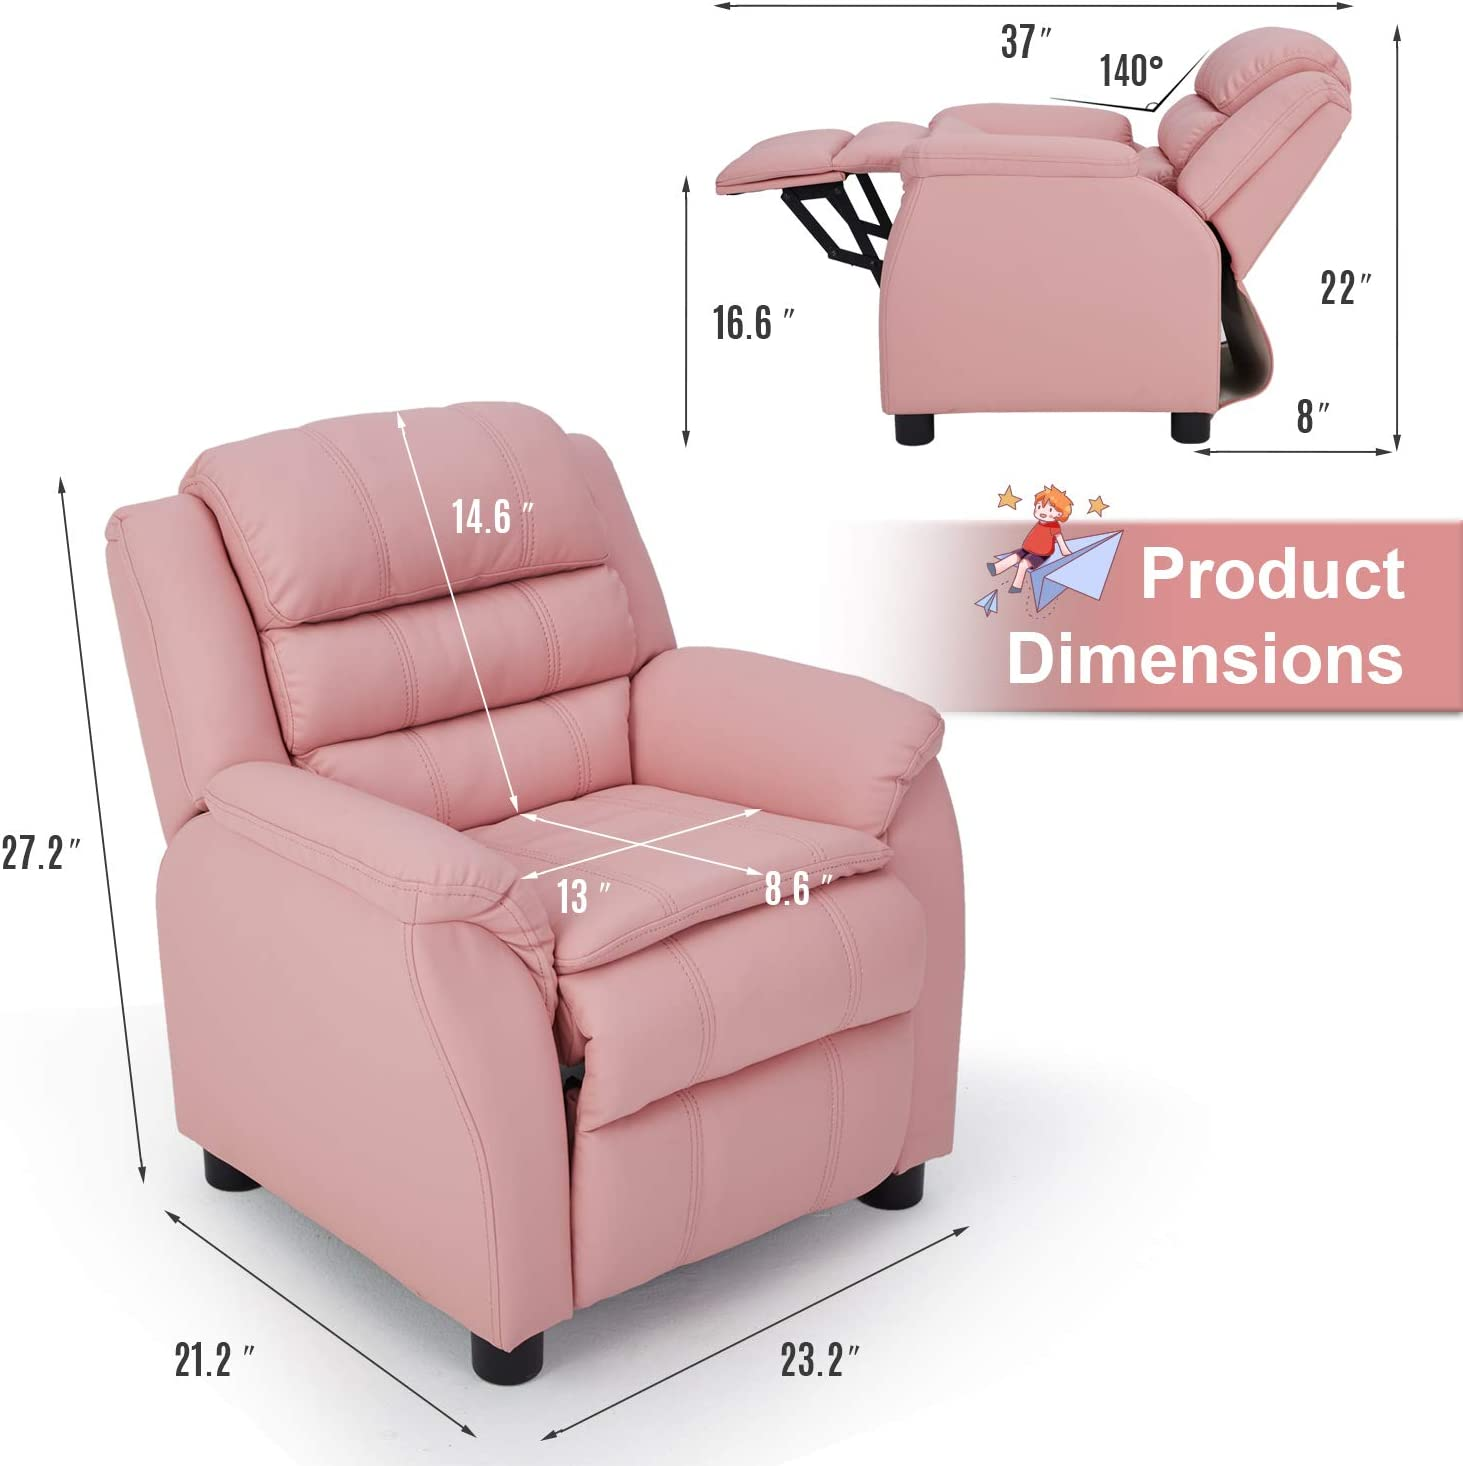 Pink Children Recliner PU Leather Armchair for Toddler Boys Girls Lightweight Sofa Chair 4+ Age Group Esright Kids Recliner Chair